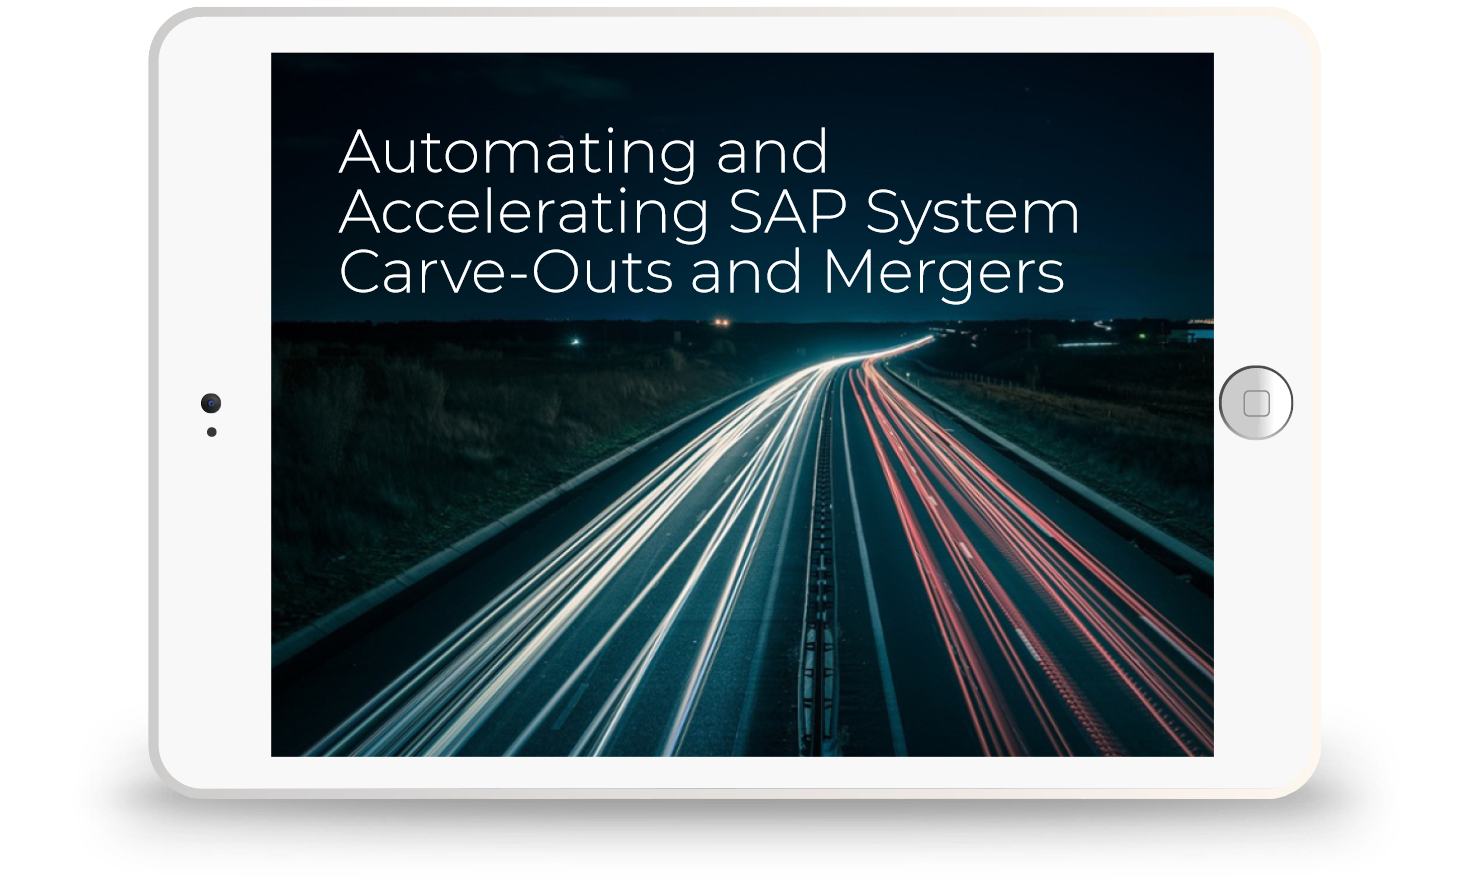 Automating and Accelerating SAP System Carve-Outs and Mergers